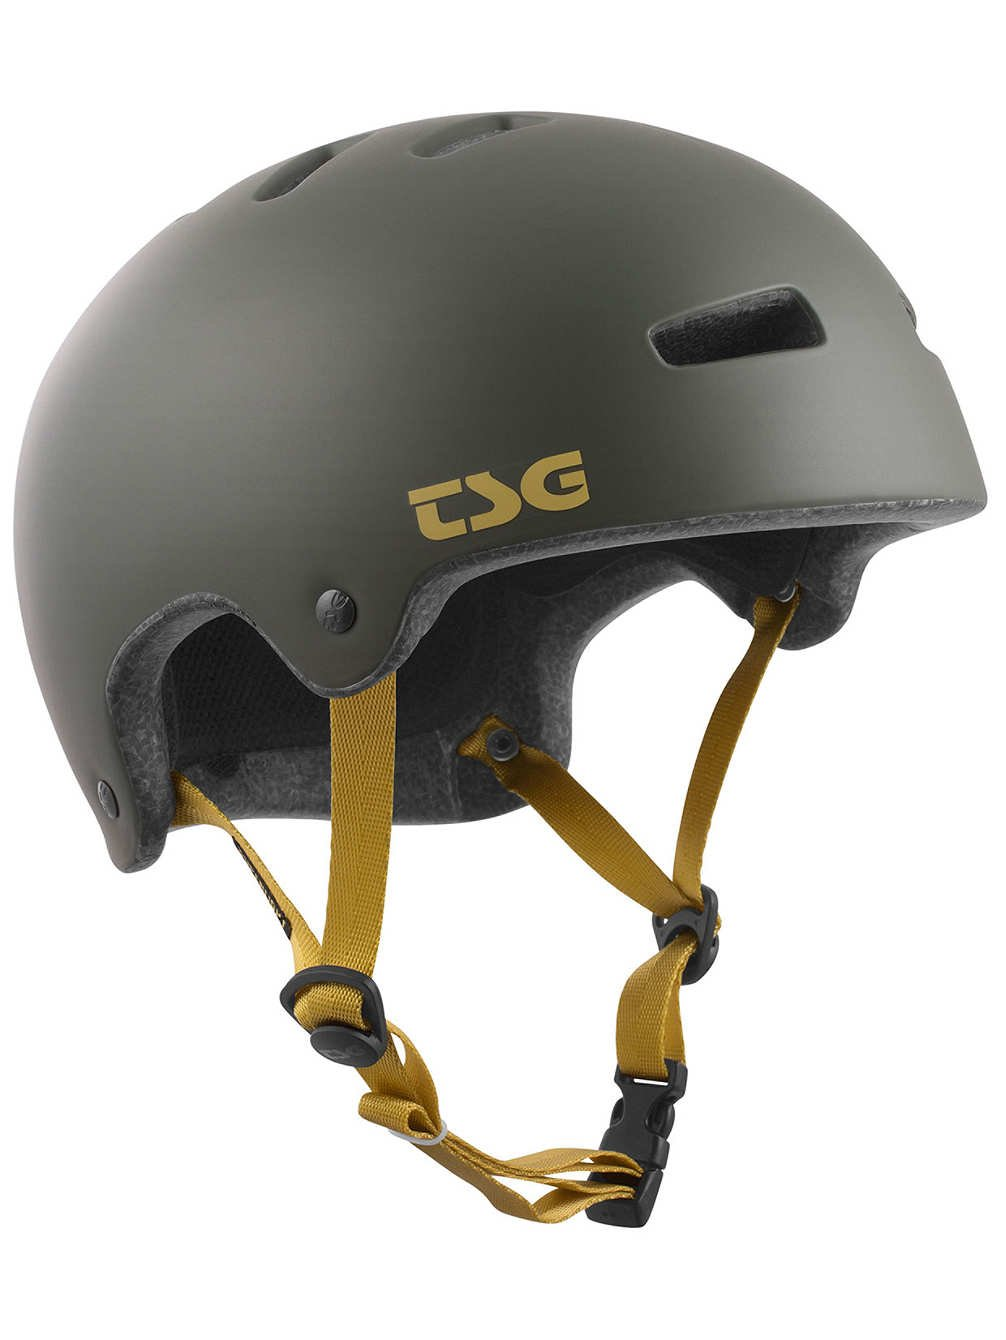 TSG Casque Superlight Solid Color TSGA5|#TSG 750136